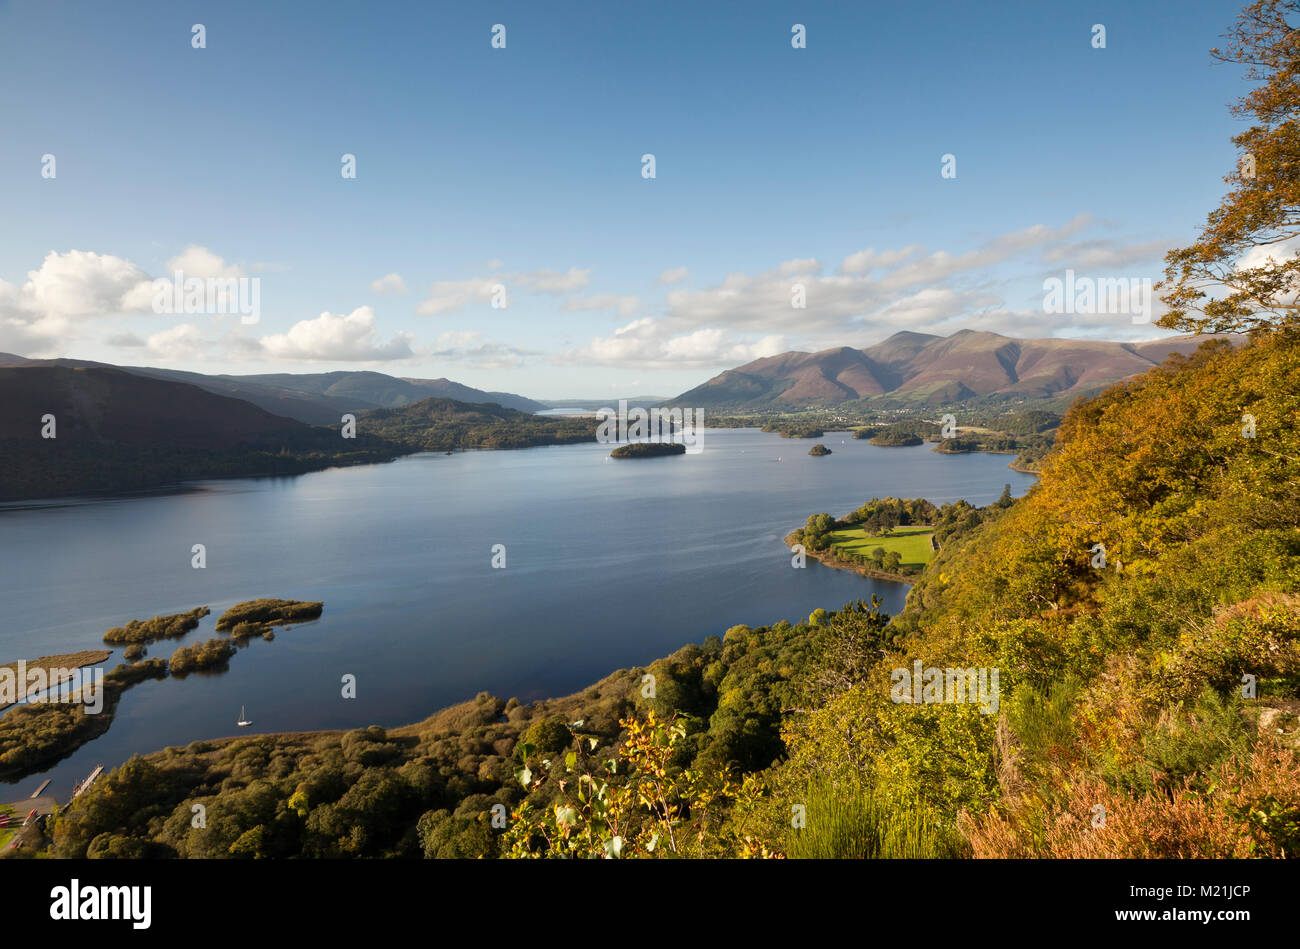 Sorpresa Ver, Lake District UK Imagen De Stock